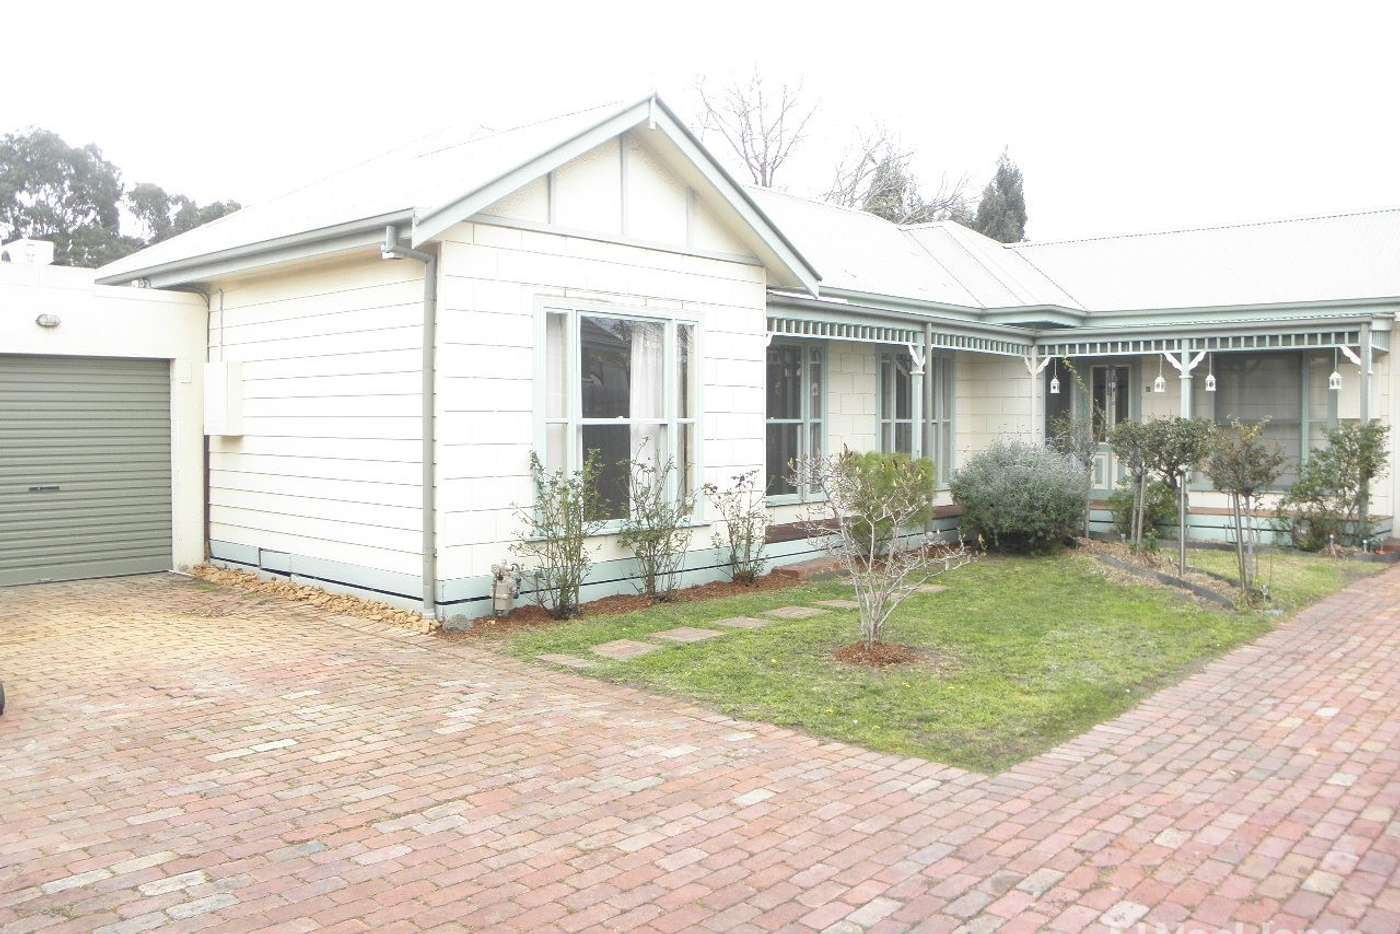 Main view of Homely unit listing, 2/91 Truman Street, South Kingsville VIC 3015